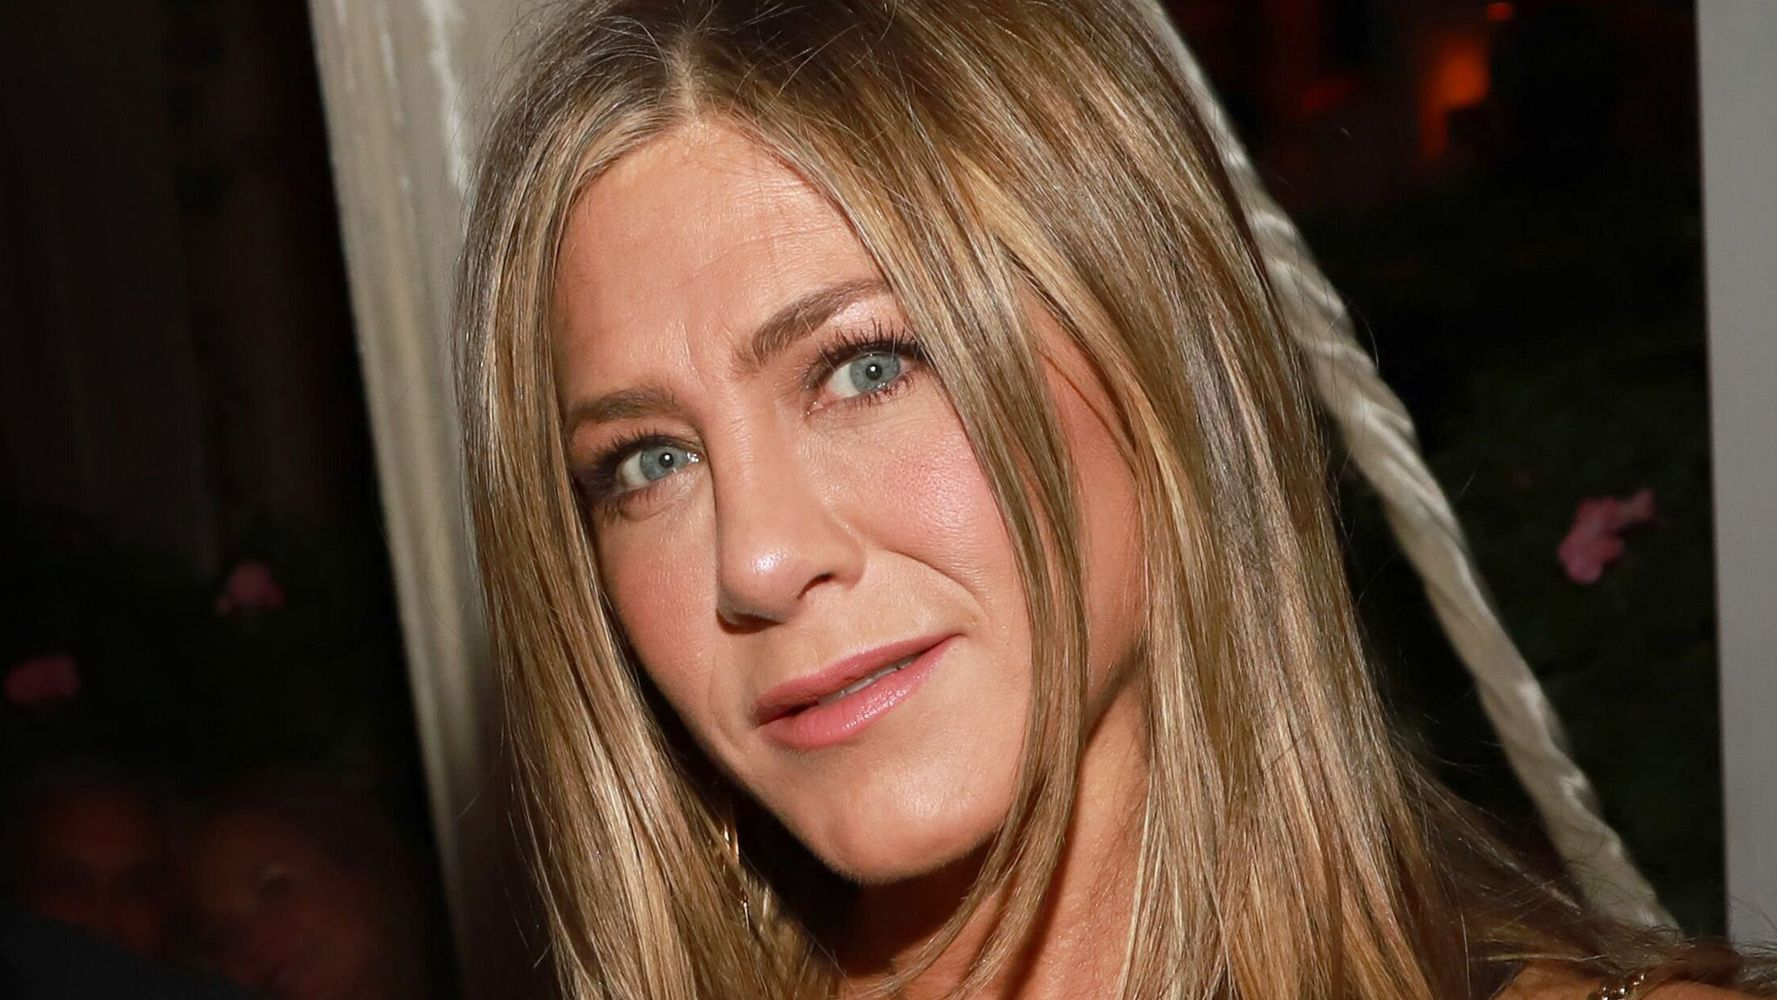 Jennifer Aniston Almost Retired From Acting After A Role 'Sucked The Life' Out Of Her